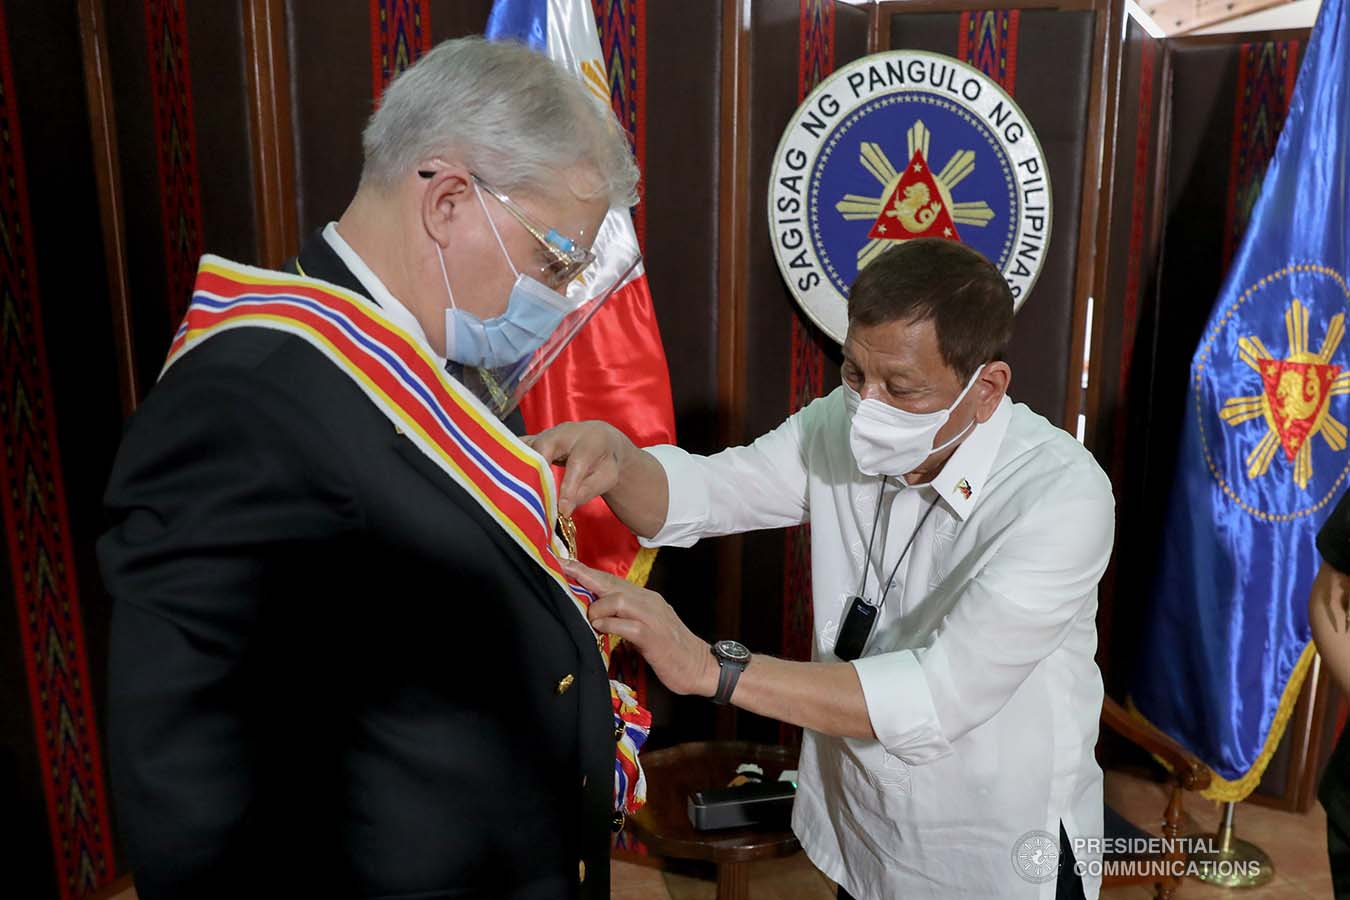 President Rodrigo Roa Duterte confers the Order of Sikatuna on outgoing Ambassador of the Russian Federation to the Philippines Igor Khovaev who paid a farewell call on the President at the Malacañang Golf (Malago) Clubhouse in Malacañang Park, Manila on October 14, 2020. ROBINSON NIÑAL/ PRESIDENTIAL PHOTO